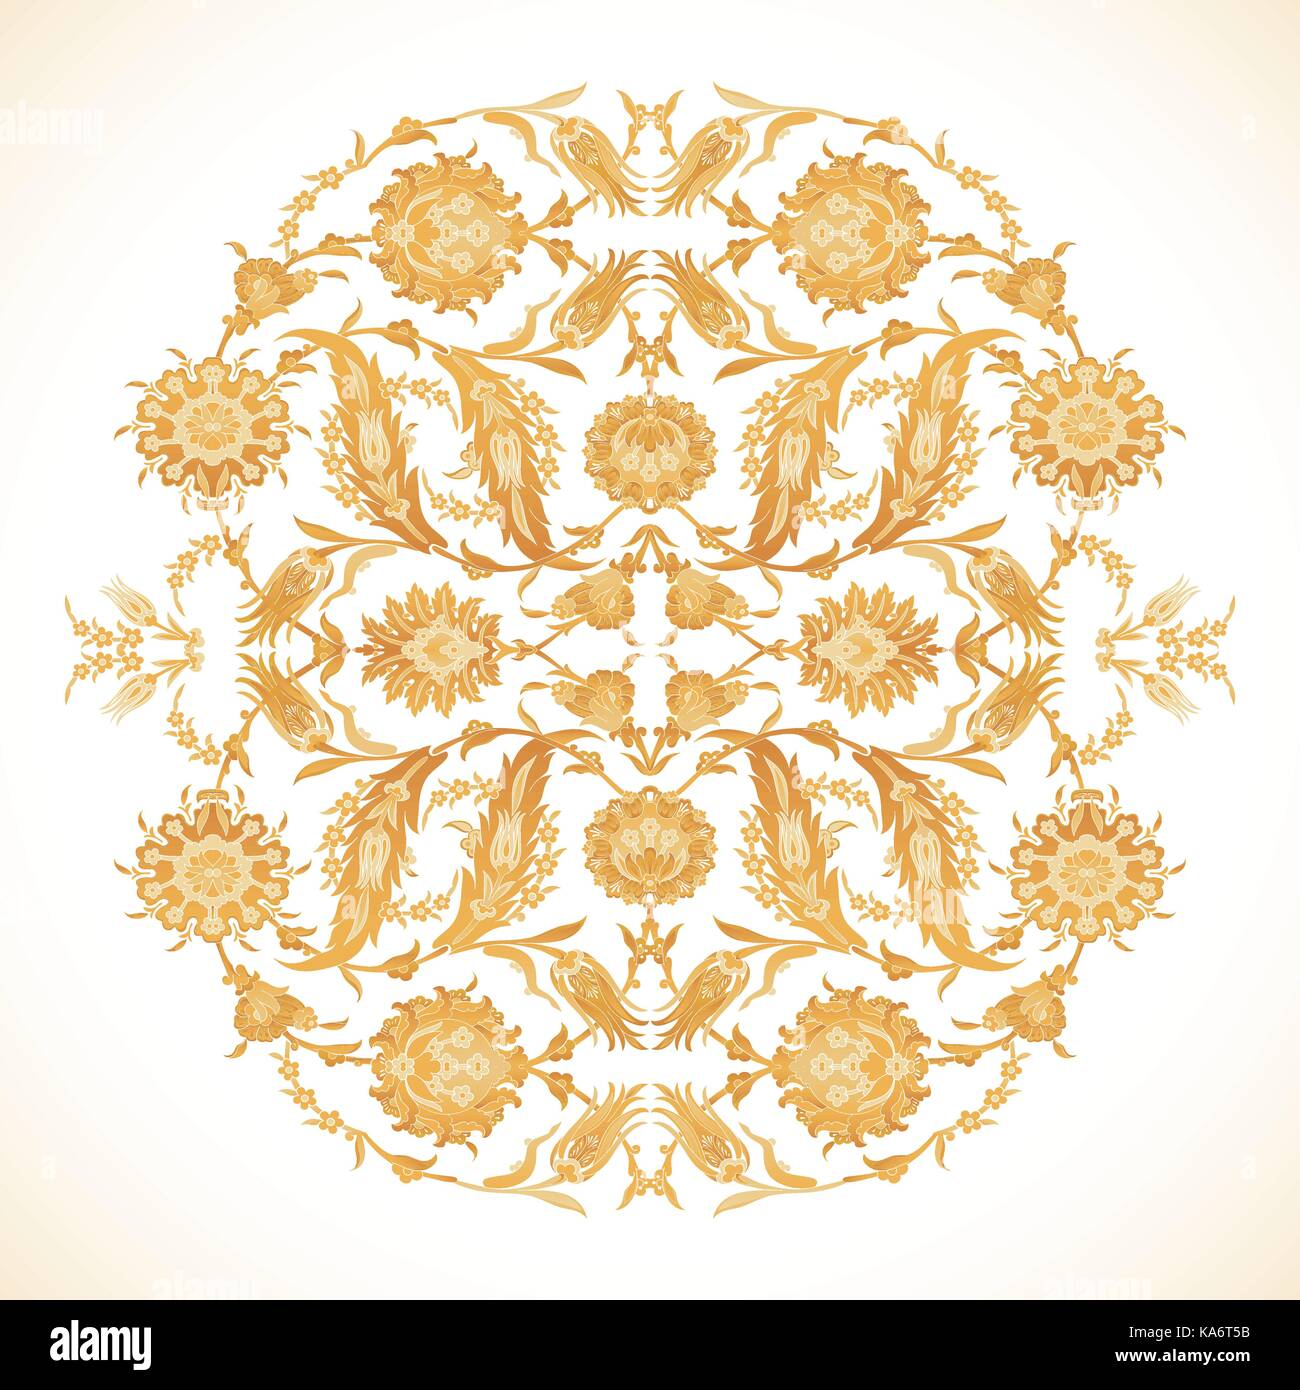 27c7a4d50fa6 Arabesque vintage gold decor ornate pattern for design template vector.  Eastern motif. Floral Border Frame circle. Flowers oriental for save the  date